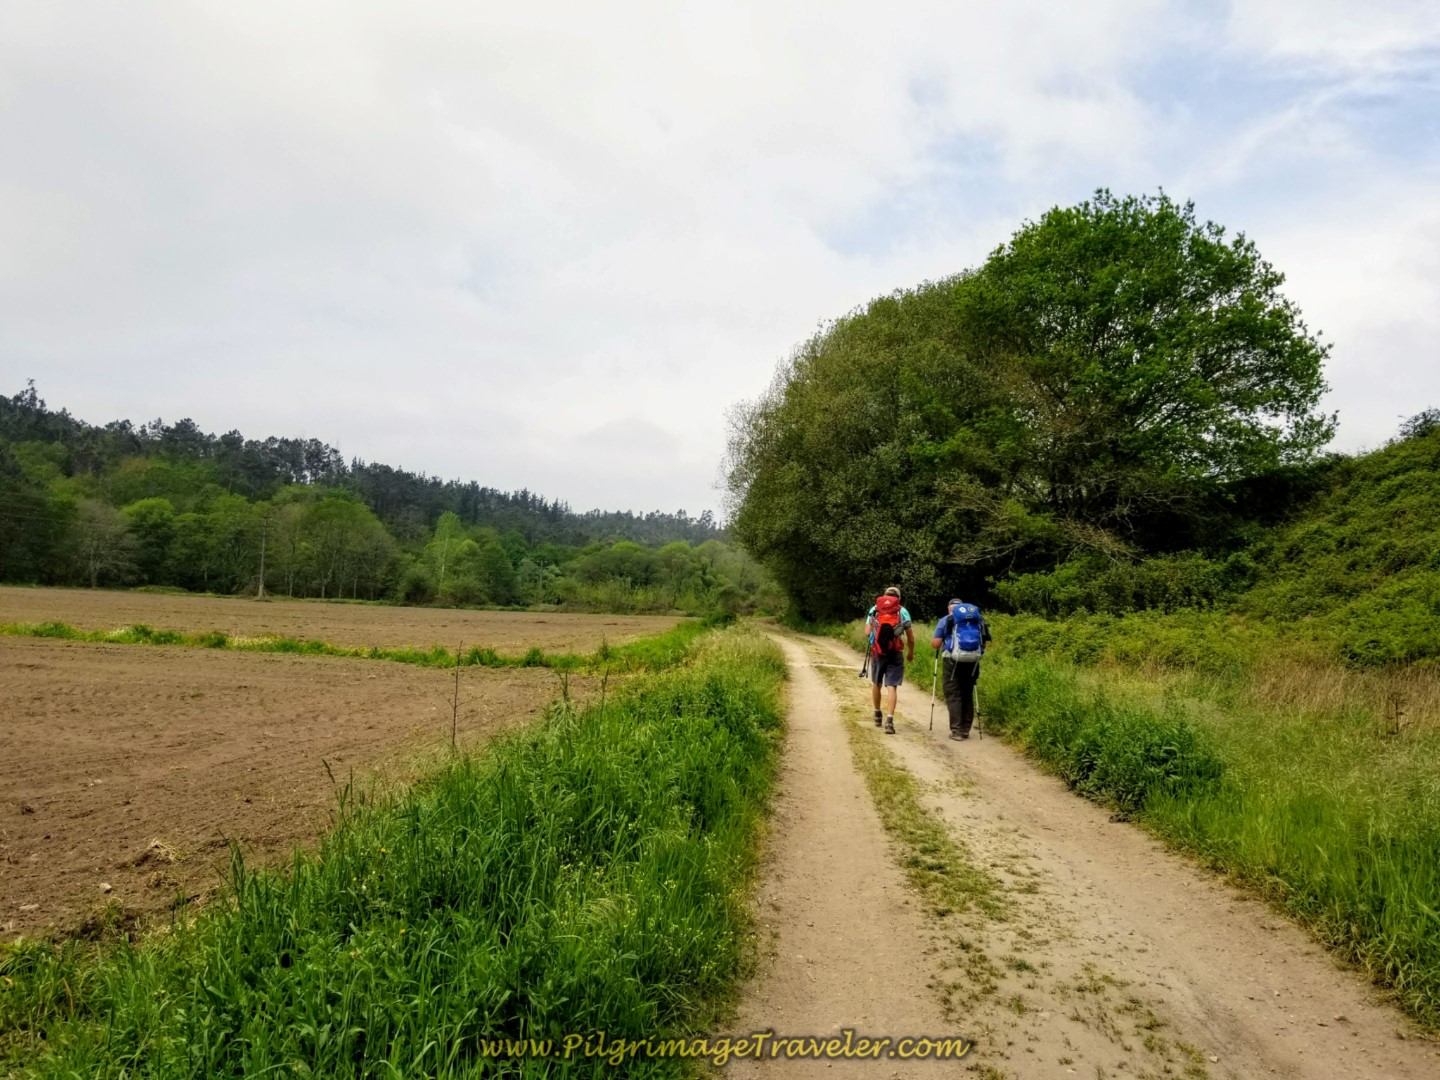 Walk on Lane Through Fields on day one of the Camino Finisterre